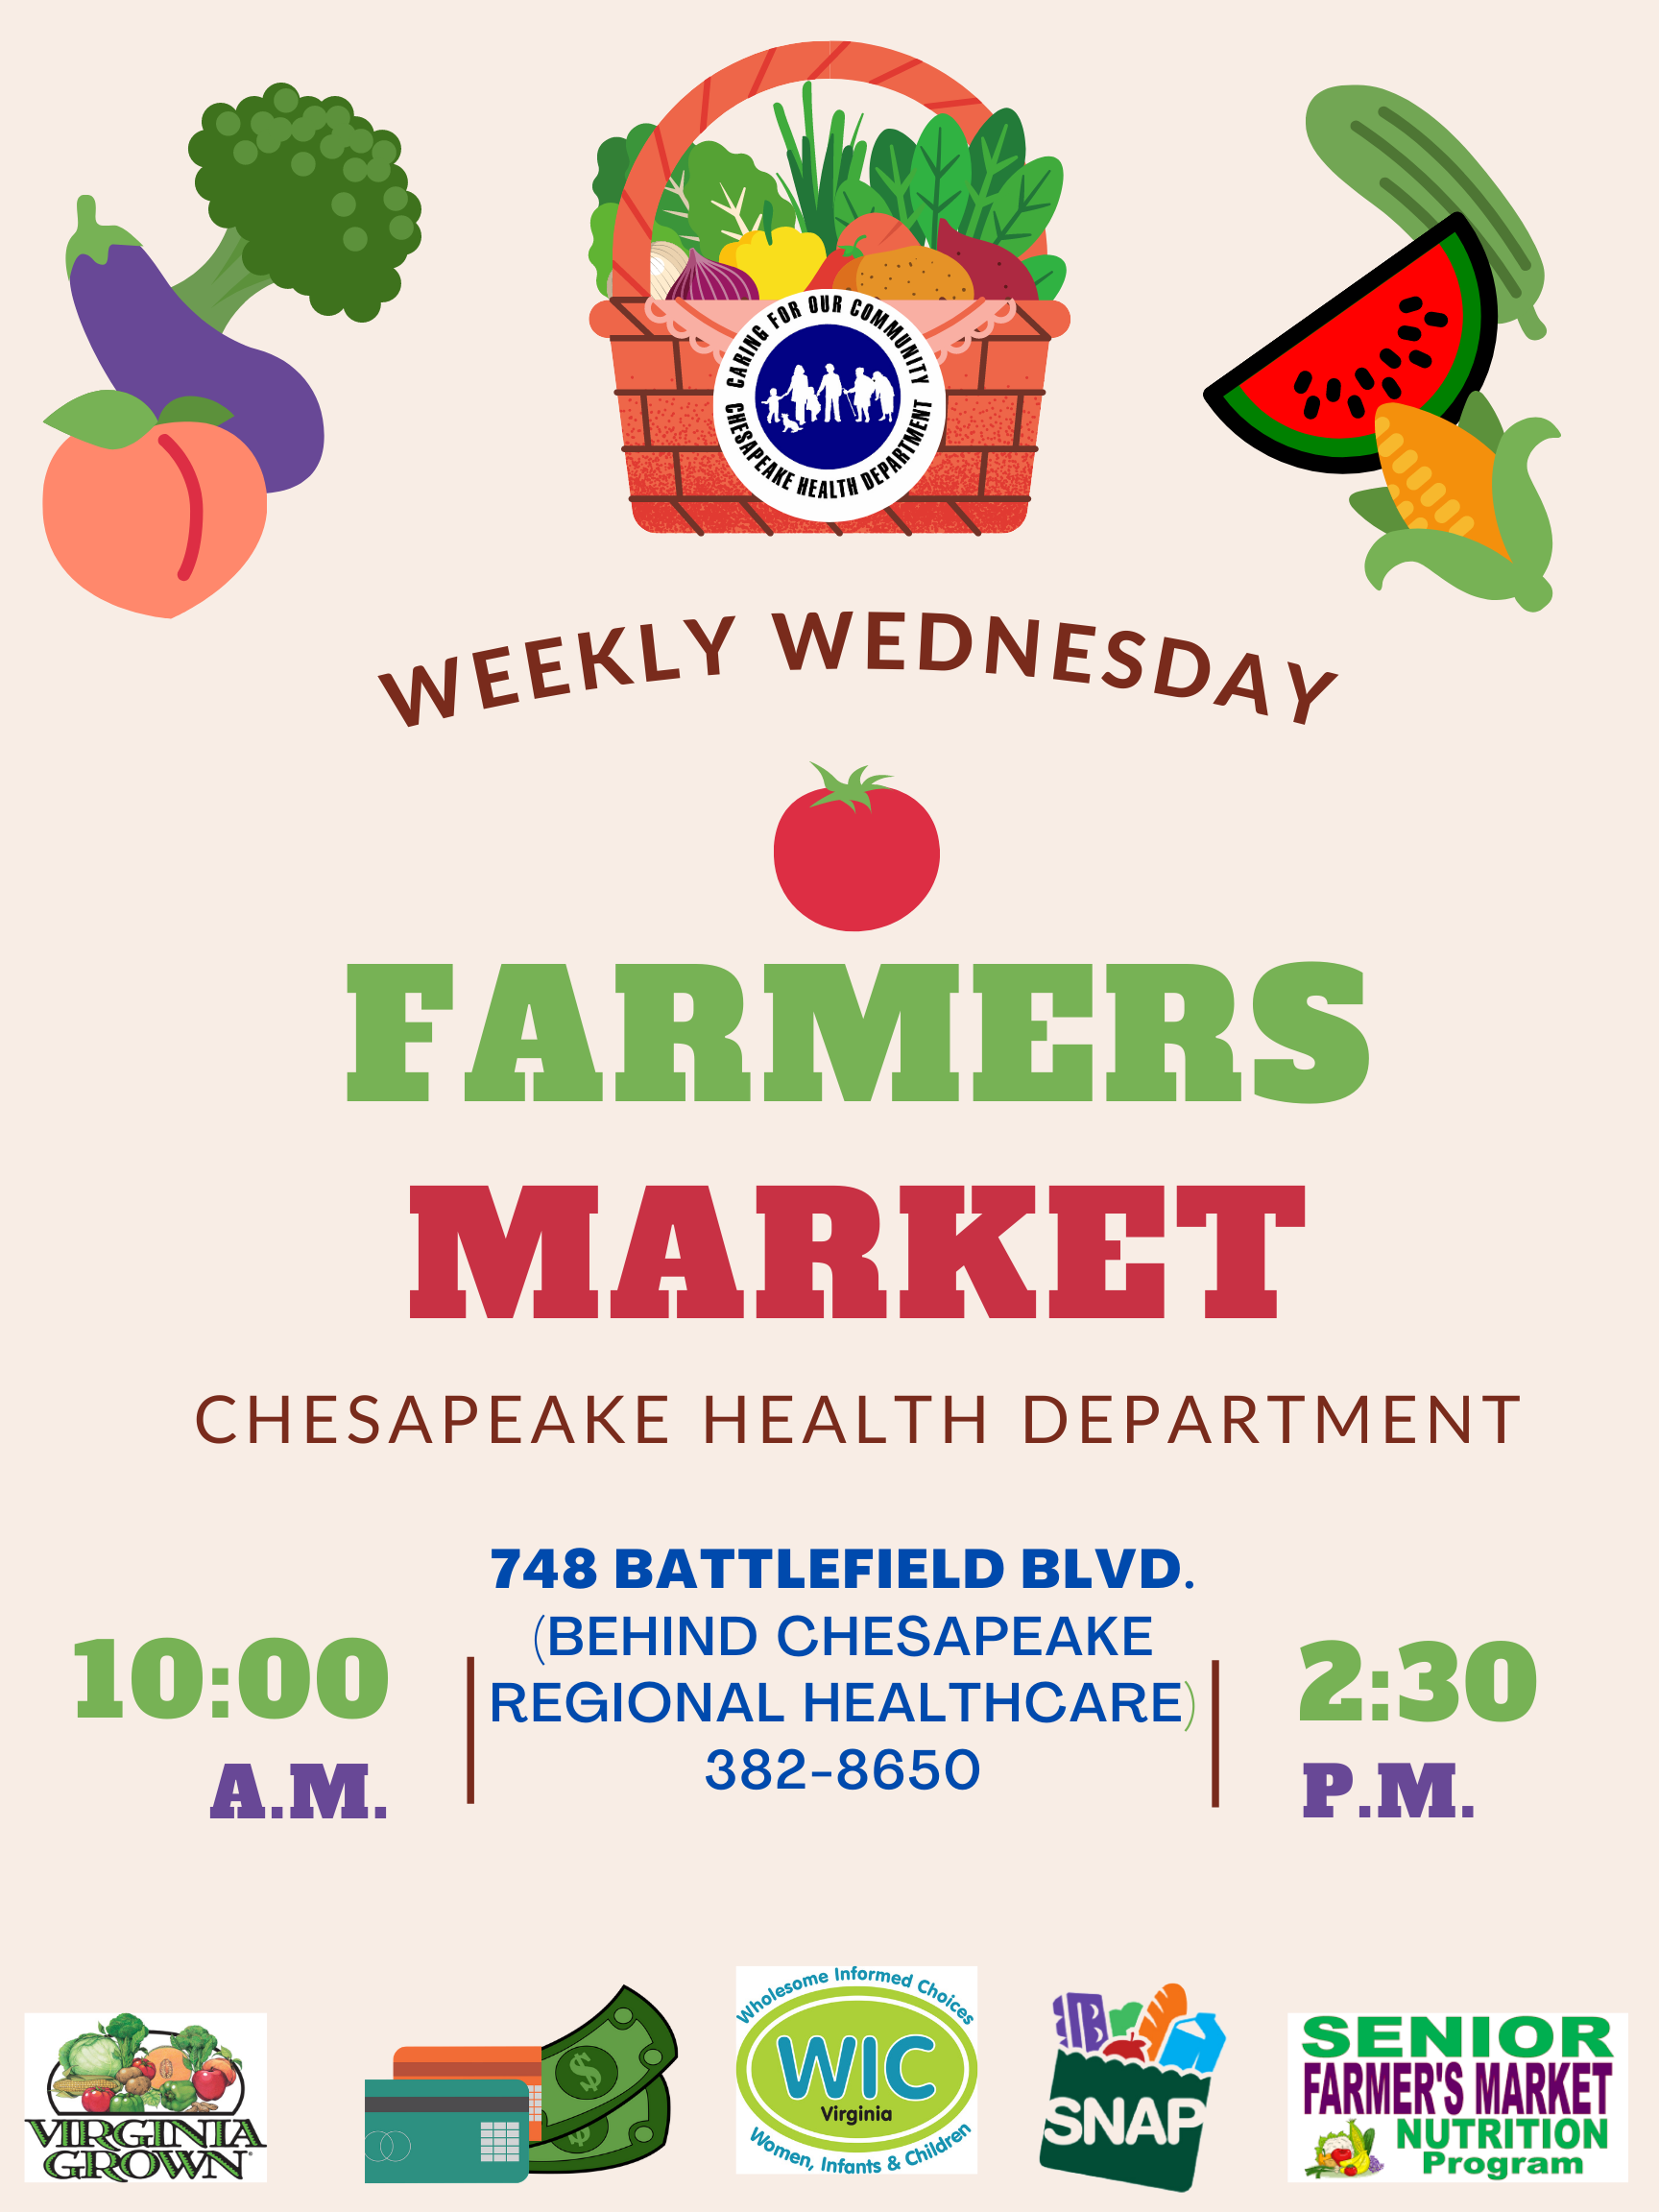 Weekly Wednesday Farmers Market at Chesapeake Health Department from 10:00 AM to 2:30 PM.